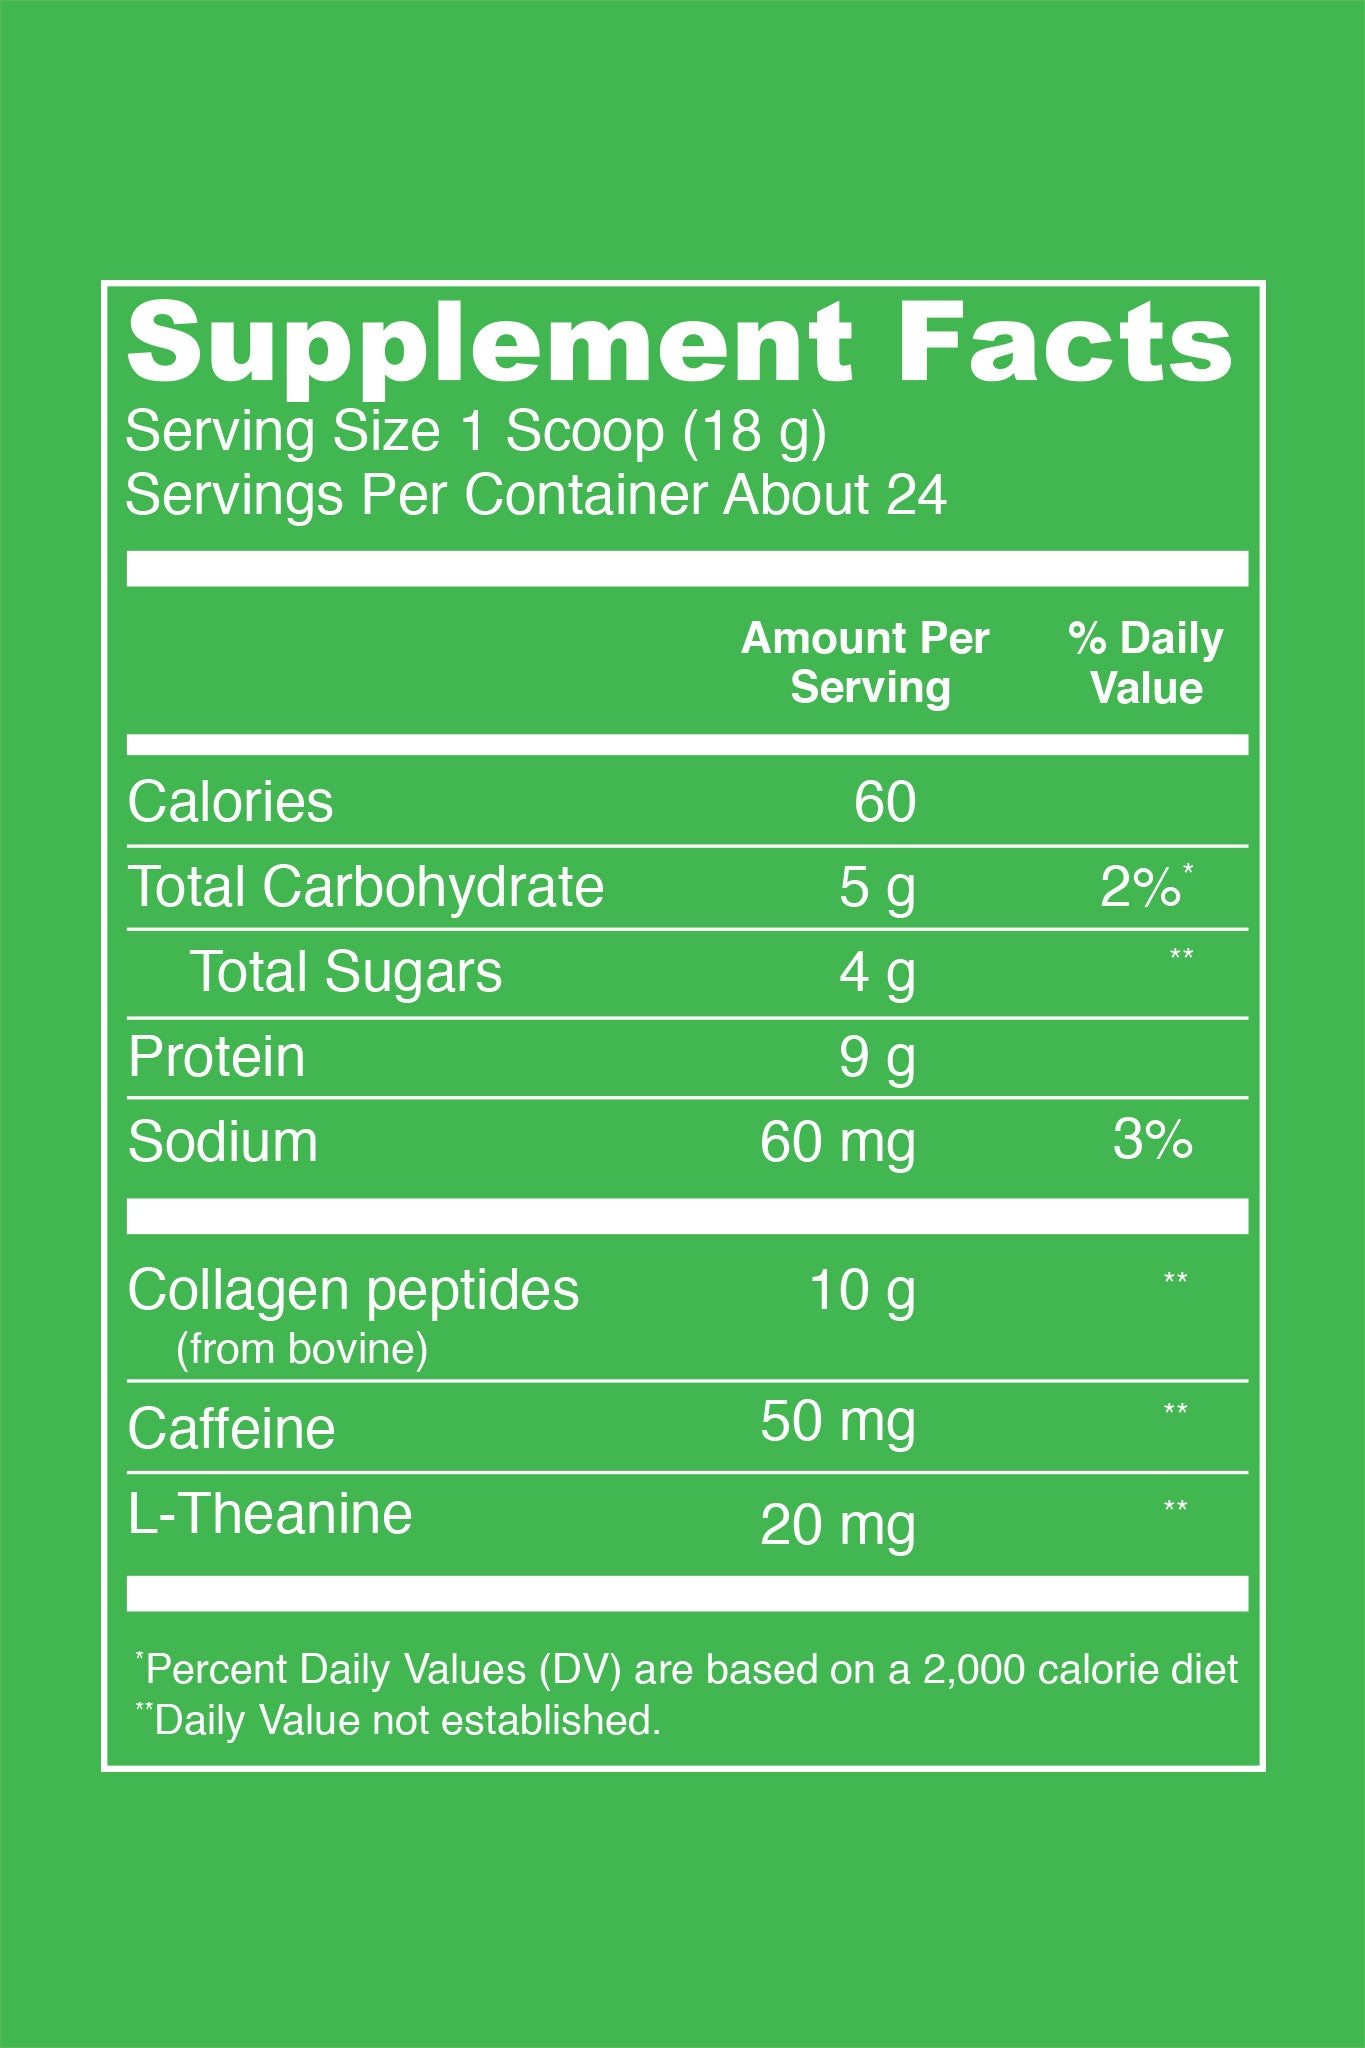 Matcha Collagen Peach (15.4oz) Supplement Facts. Serving Size: 1 Scoop (18 g). Servings Per Container: About 24. Per Serving Values: Calories: 60. Total Carbohydrates: 5 g (2% DV). Total Sugars: 4g. Protein: 9 g. Sodium: 60 mg (3% DV). Collagen Peptides (from Bovine): 10 g. Caffeine: 50 mg. L-Theanine: 20 mg.